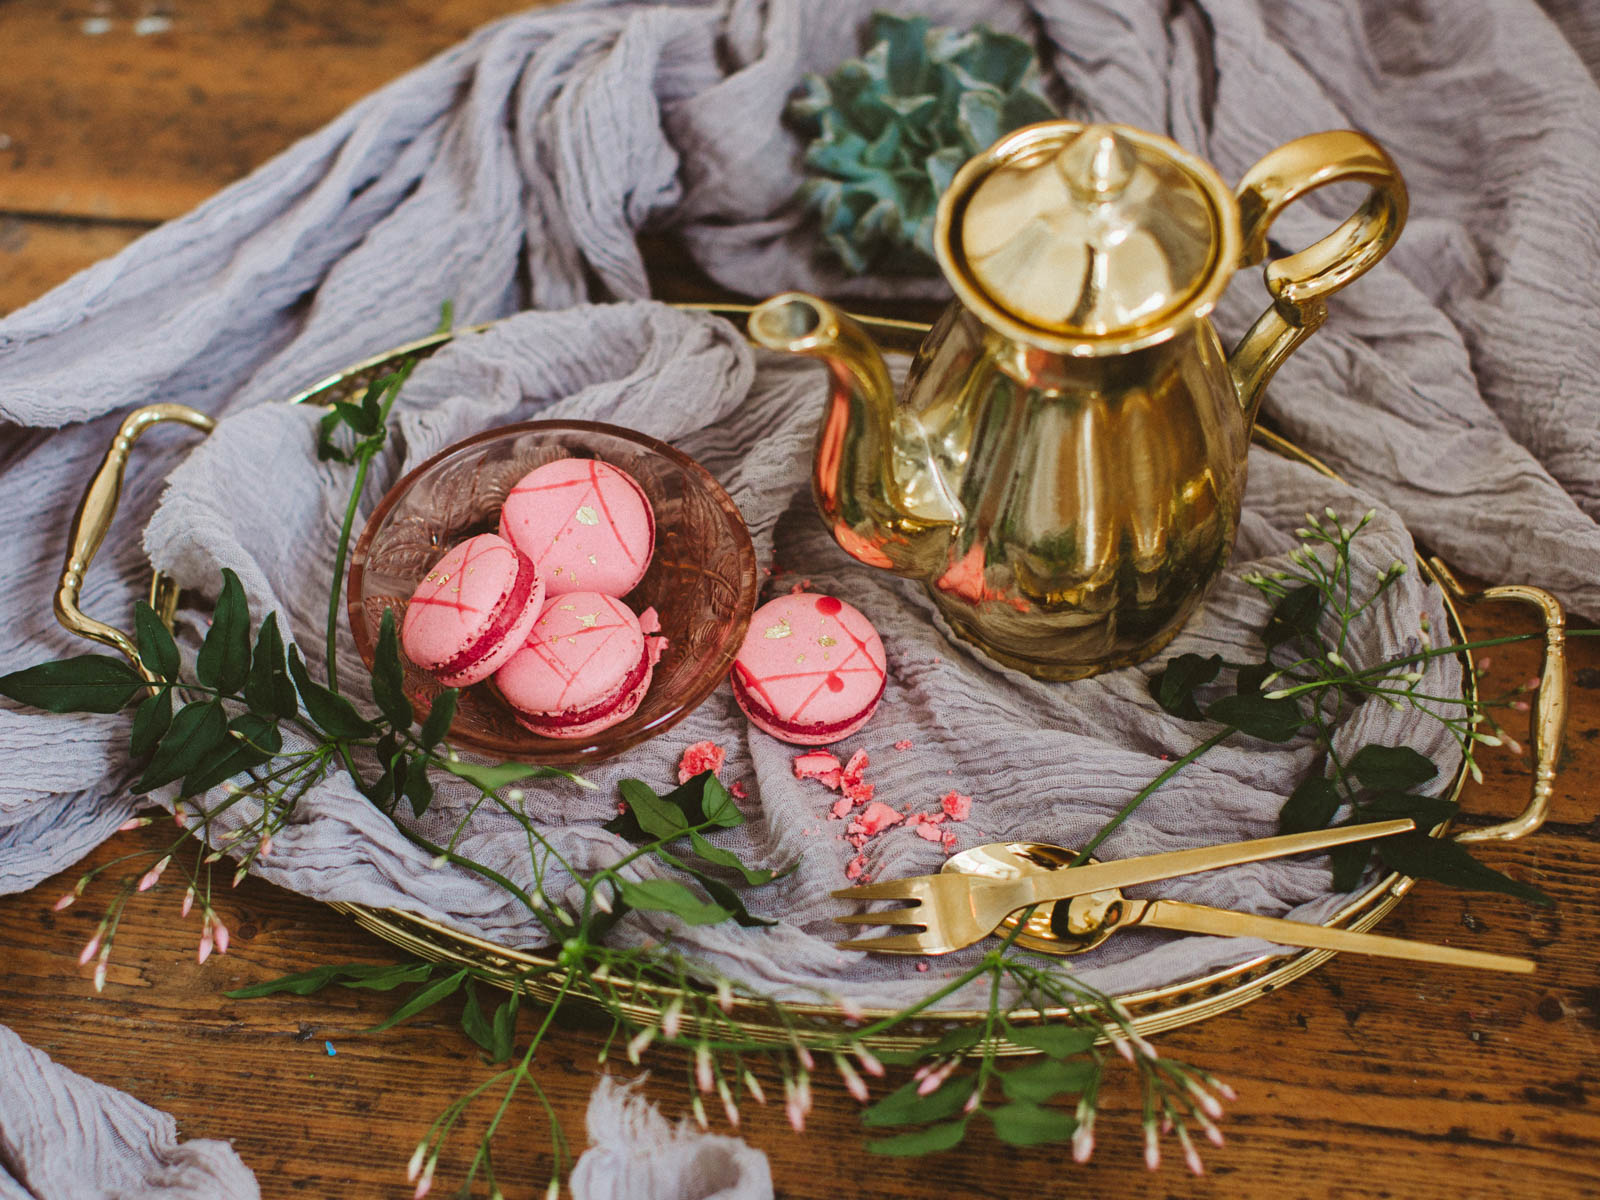 strawberry macarons with gold teapot and cutlery